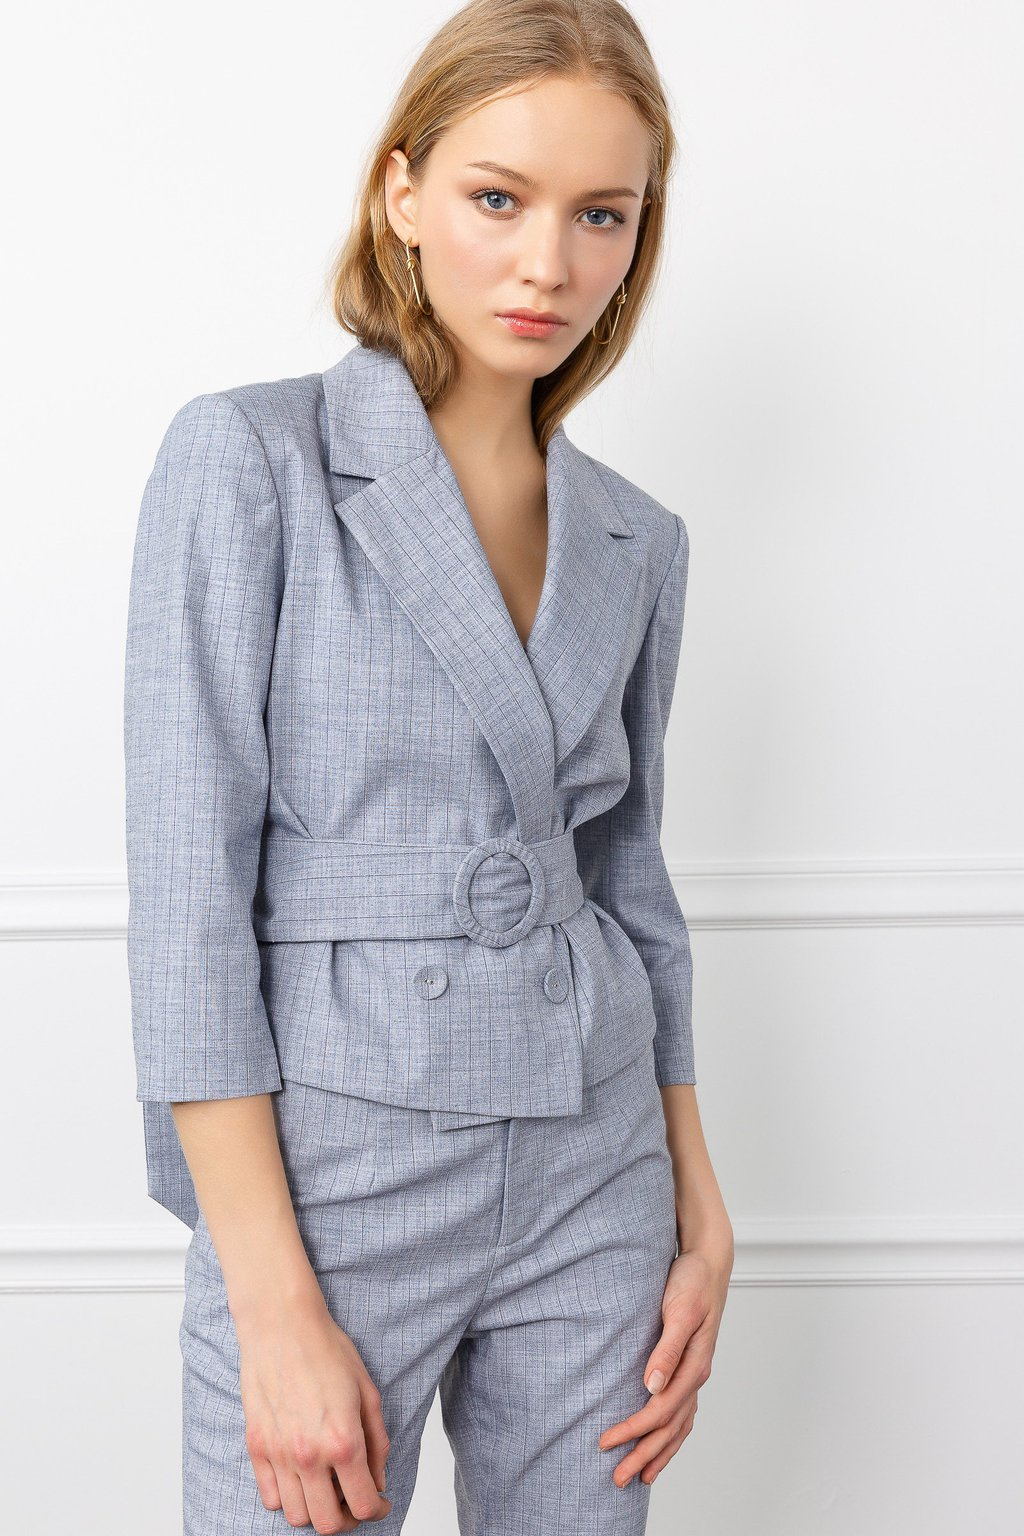 Blue Carmen Belted Blazer Suit Set for women's fashion clothing  by J.ING